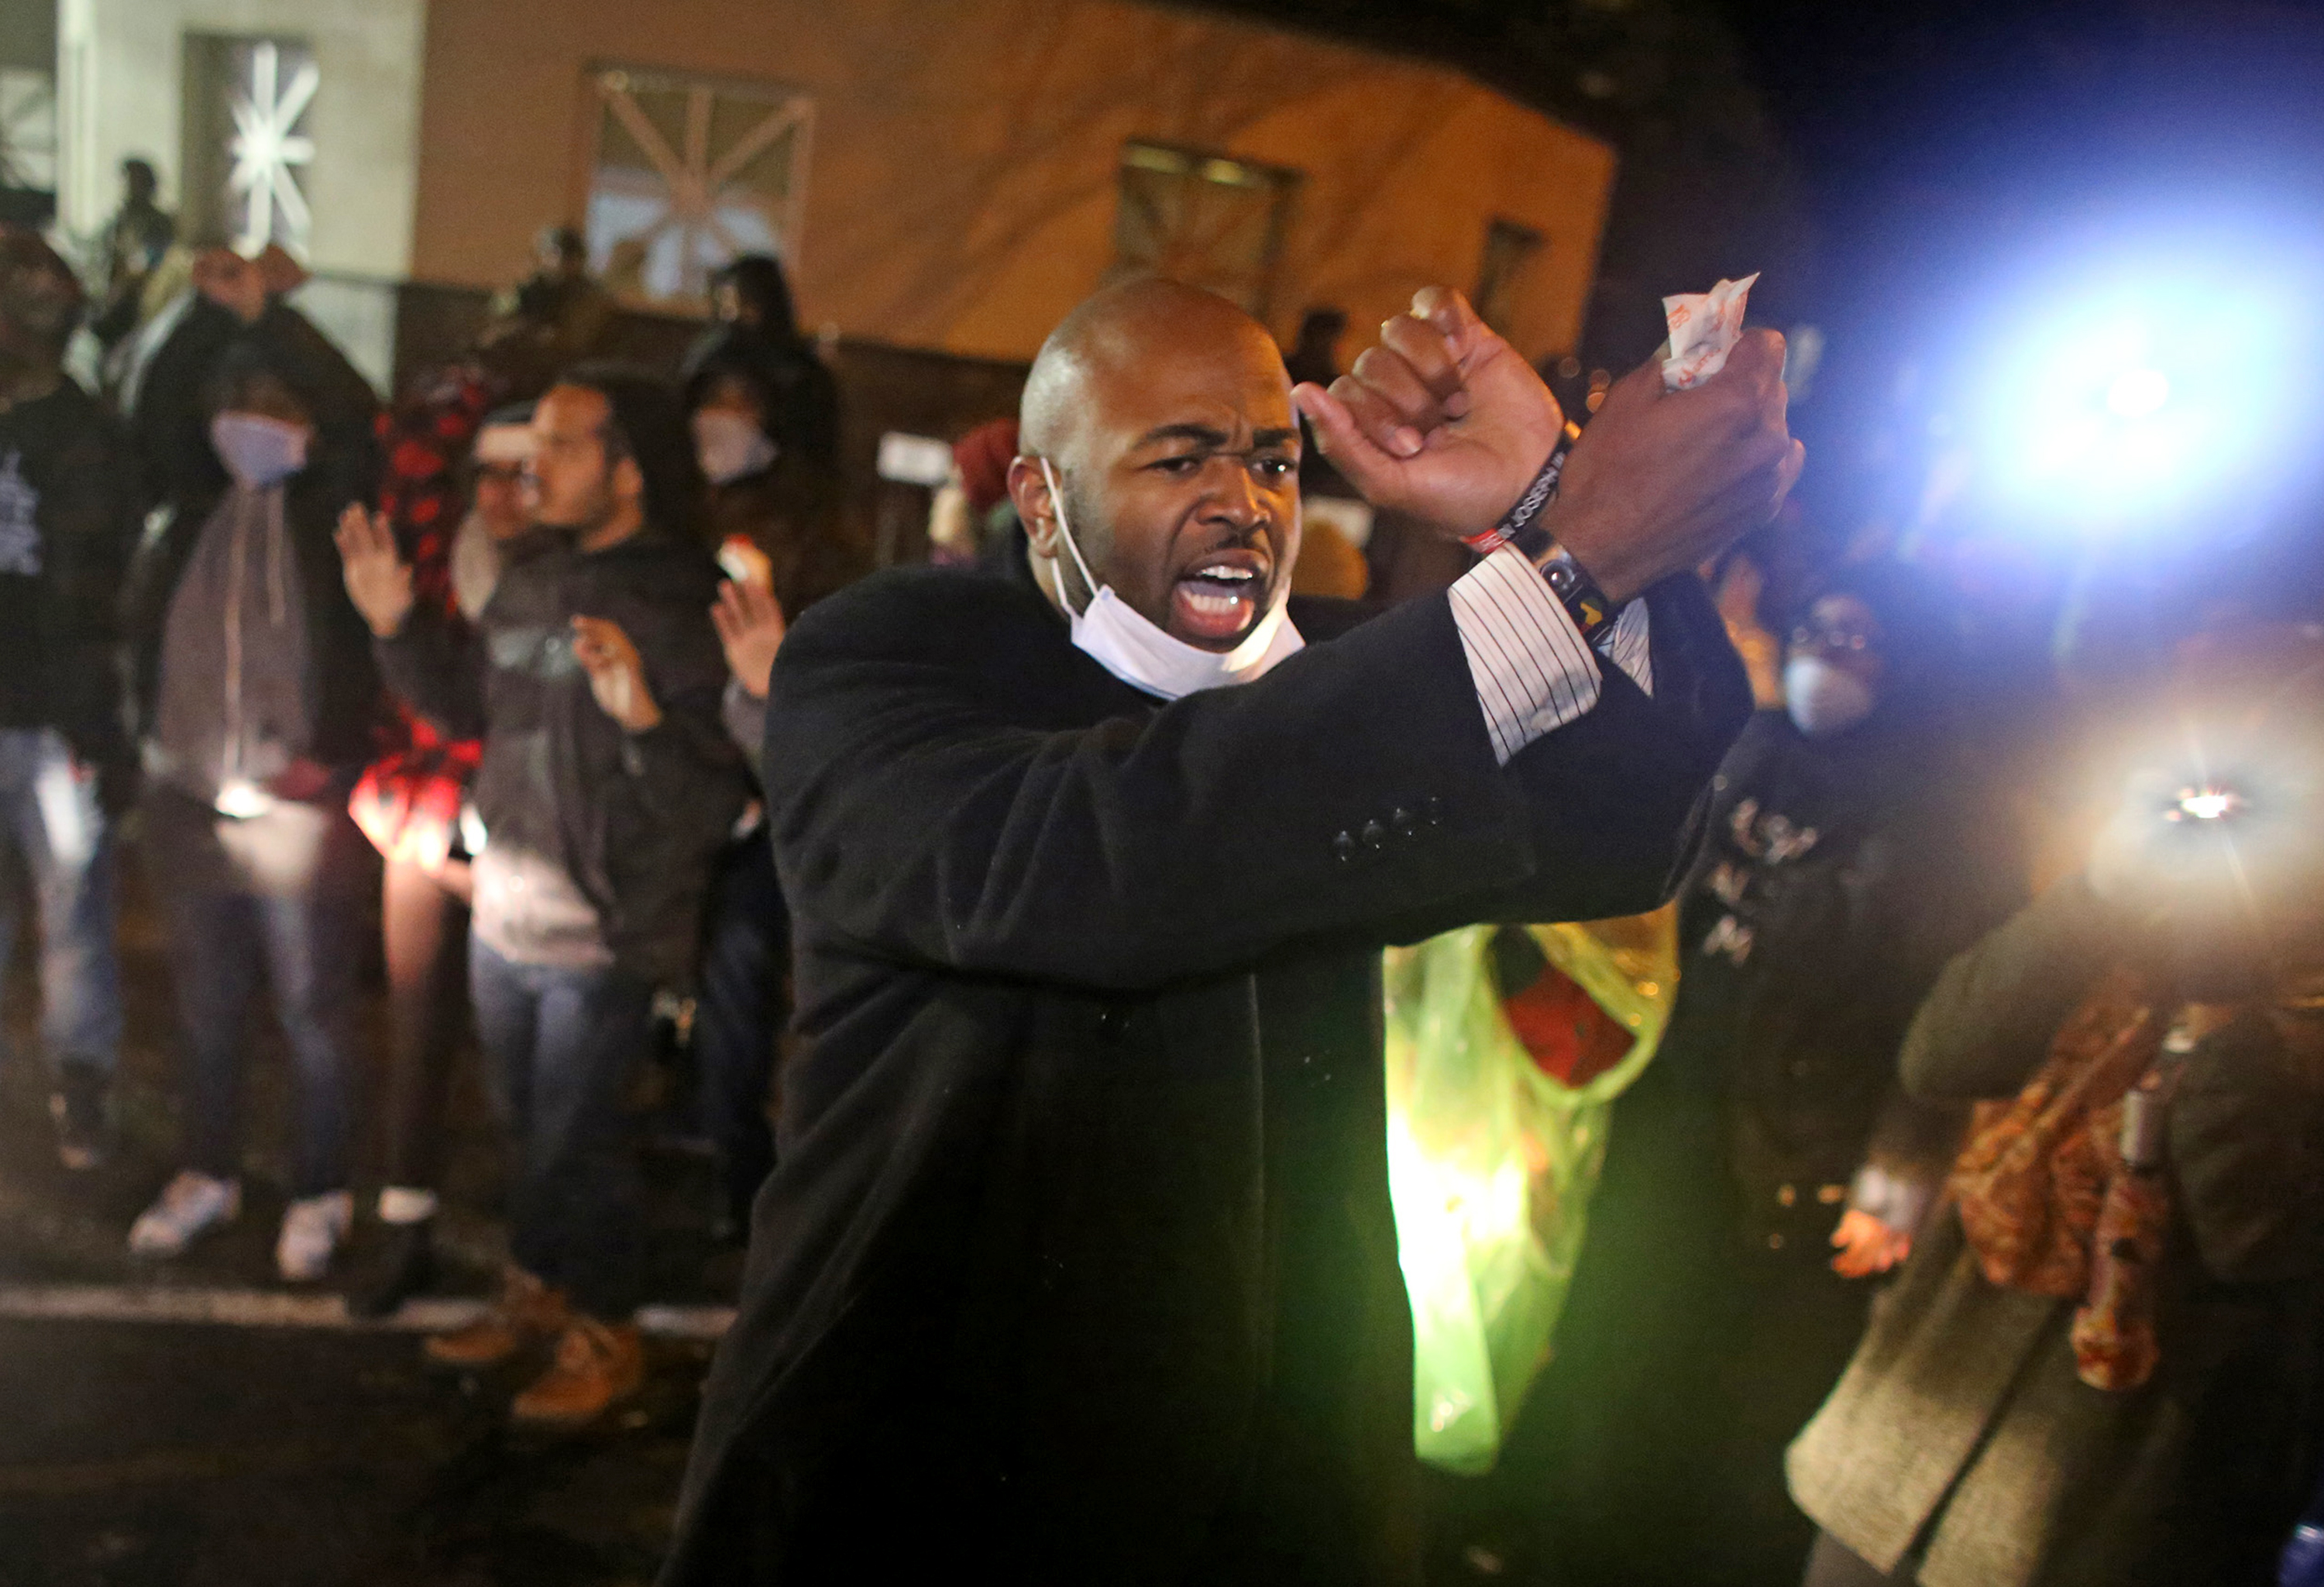 Jason Sole, of the NAACP lead the crowd in chanting and keep them at a safe distance after police in riot gear drove near the front of the Minneapolis Fourth Precinct ] (KYNDELL HARKNESS/STAR TRIBUNE) kyndell.harkness@startribune.com Black Lives Matter protested in front of Minneapolis Fourth Precinct in Minneapolis Min., Wednesday November 18, 2015. ORG XMIT: MIN1511182040320678